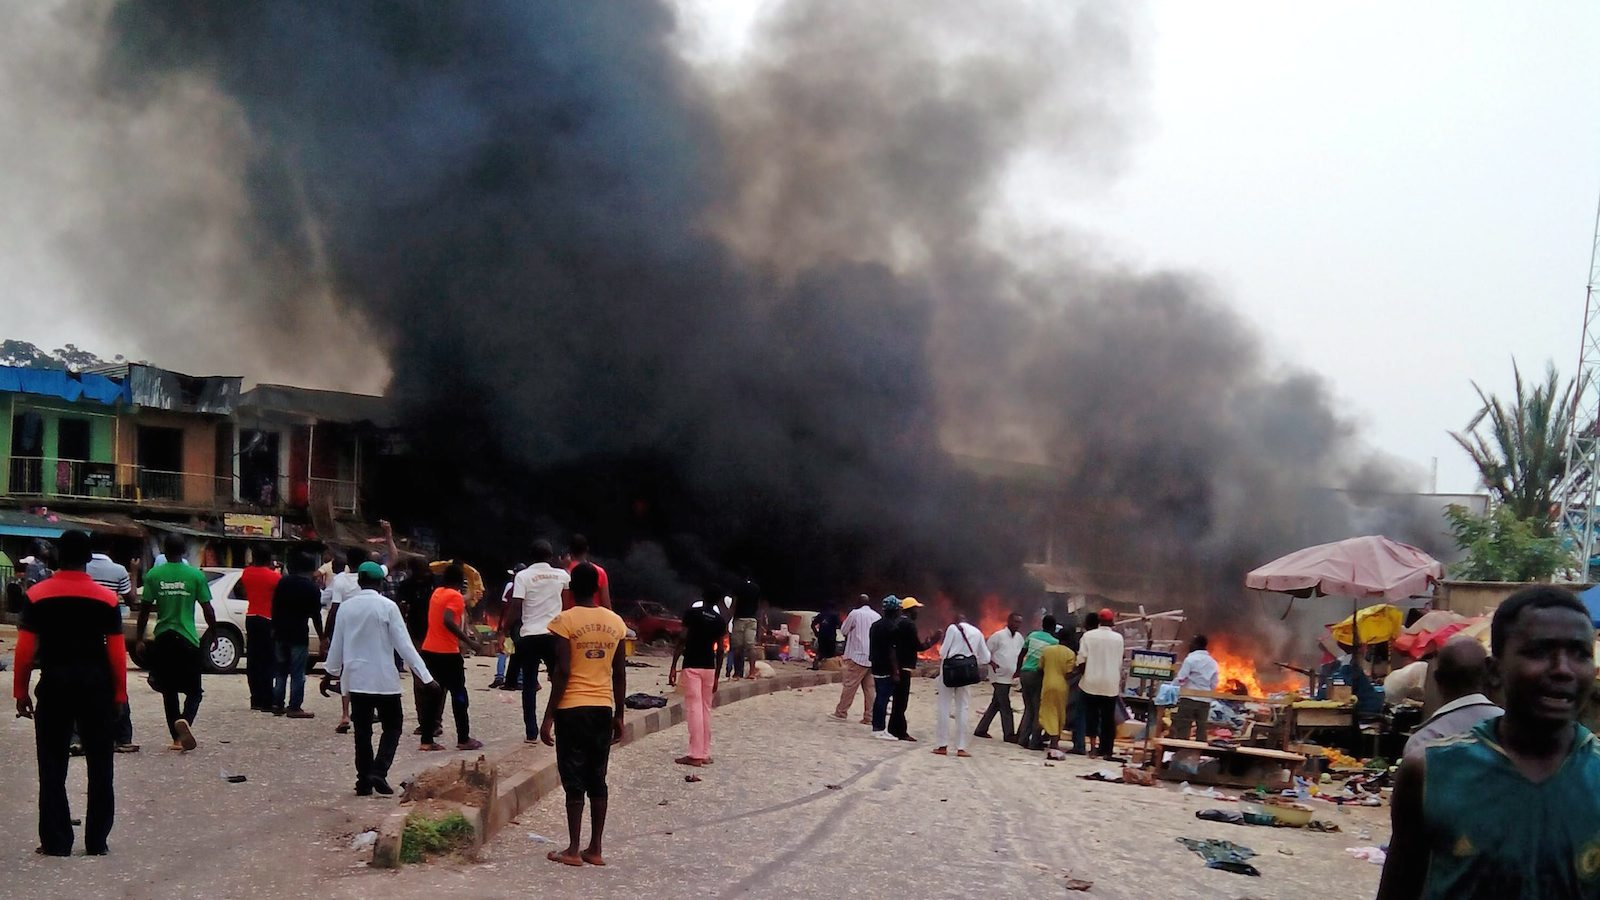 Smoke rises after a bomb blast at a bus terminal in Jos, Nigeria, Tuesday, May 20, 2014. Two explosions ripped through a bustling bus terminal and market frequented by thousands of people in Nigeria's central city of Jos on Tuesday afternoon, and police said there are an unknown number of casualties. The blasts could be heard miles away and clouds of black smoke rose above the city as firefighters and rescue workers struggled to reach the area as thousands of people fled. (Stefanos Foundation, AP Photo)